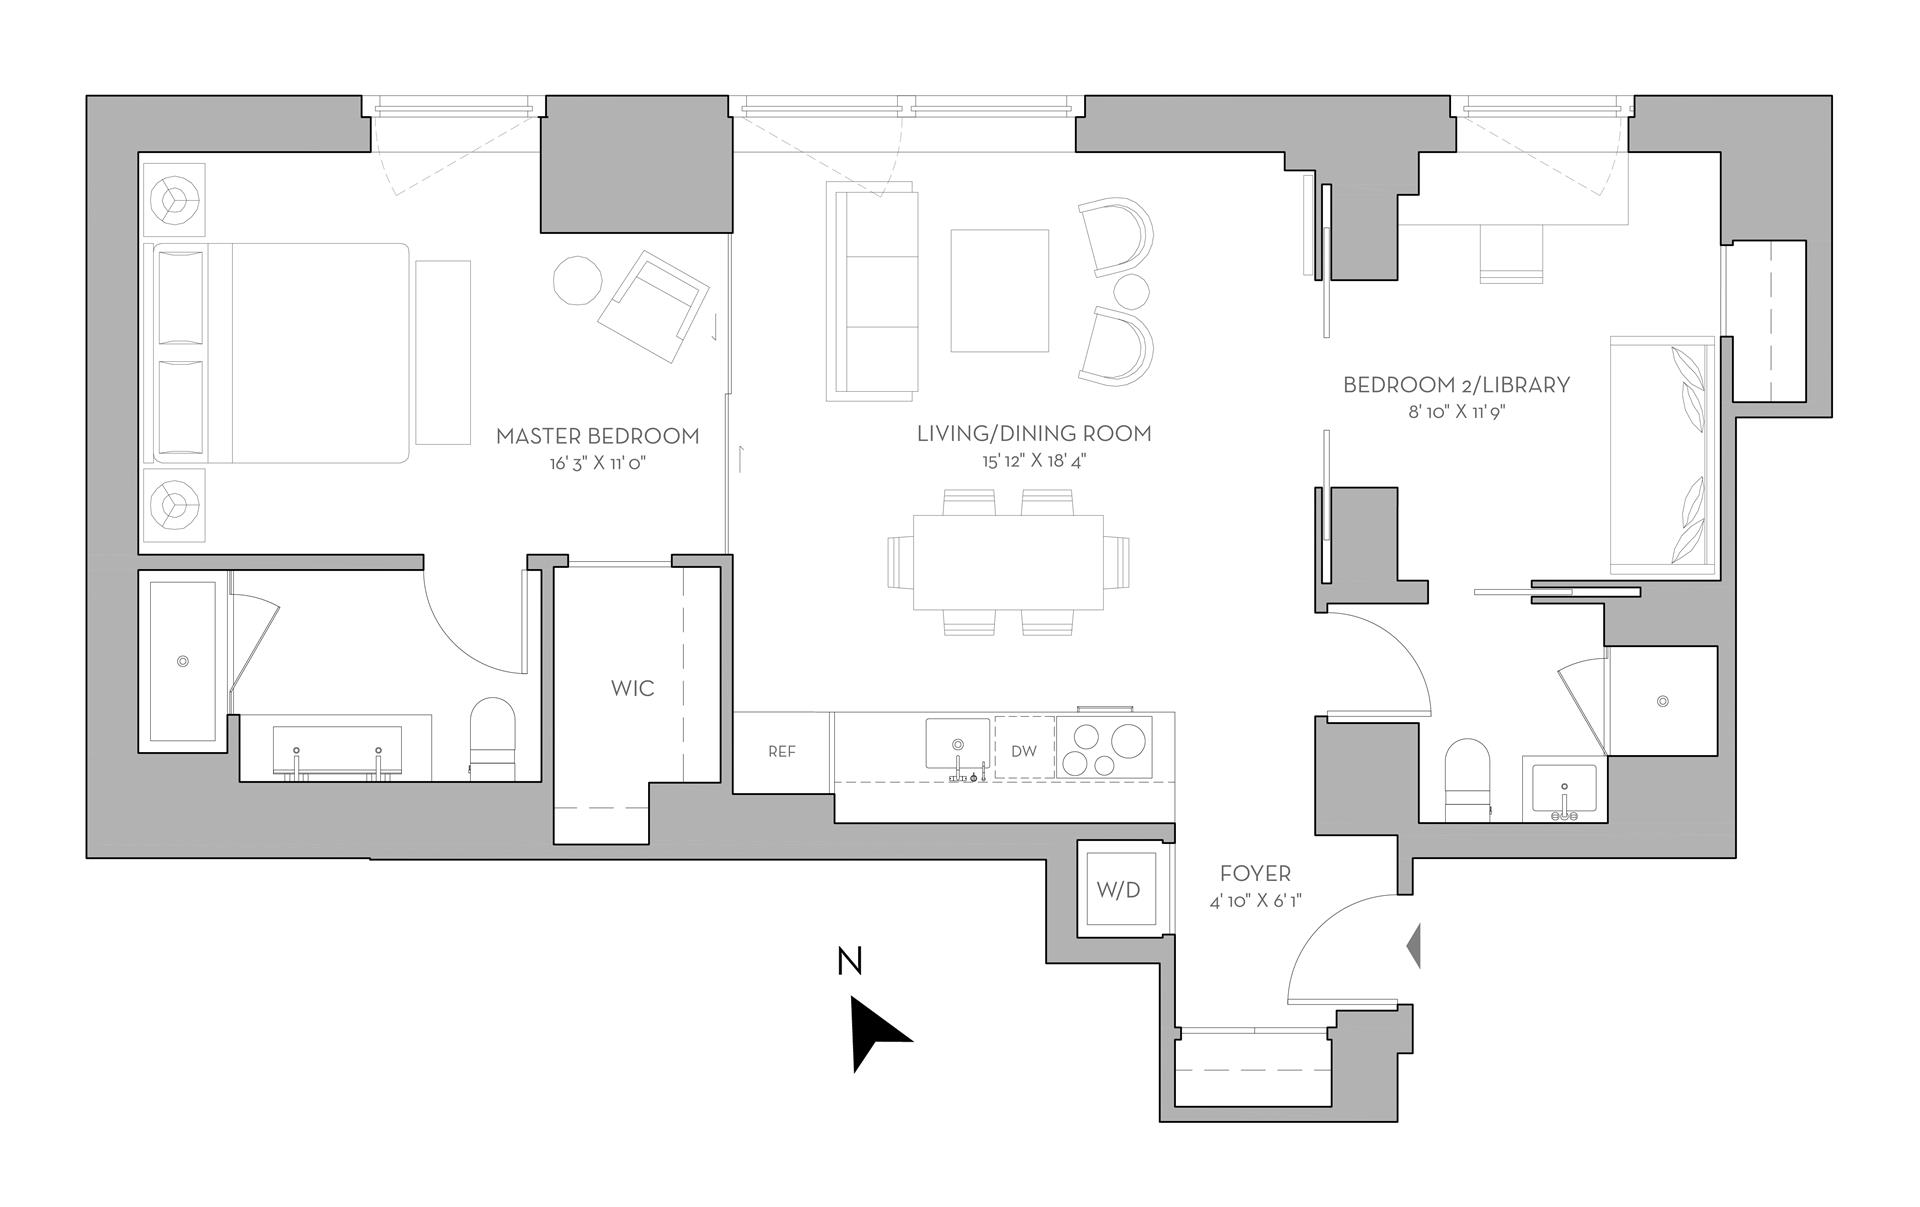 Floor plan of 135 West 52nd St, 11A - Midtown, New York